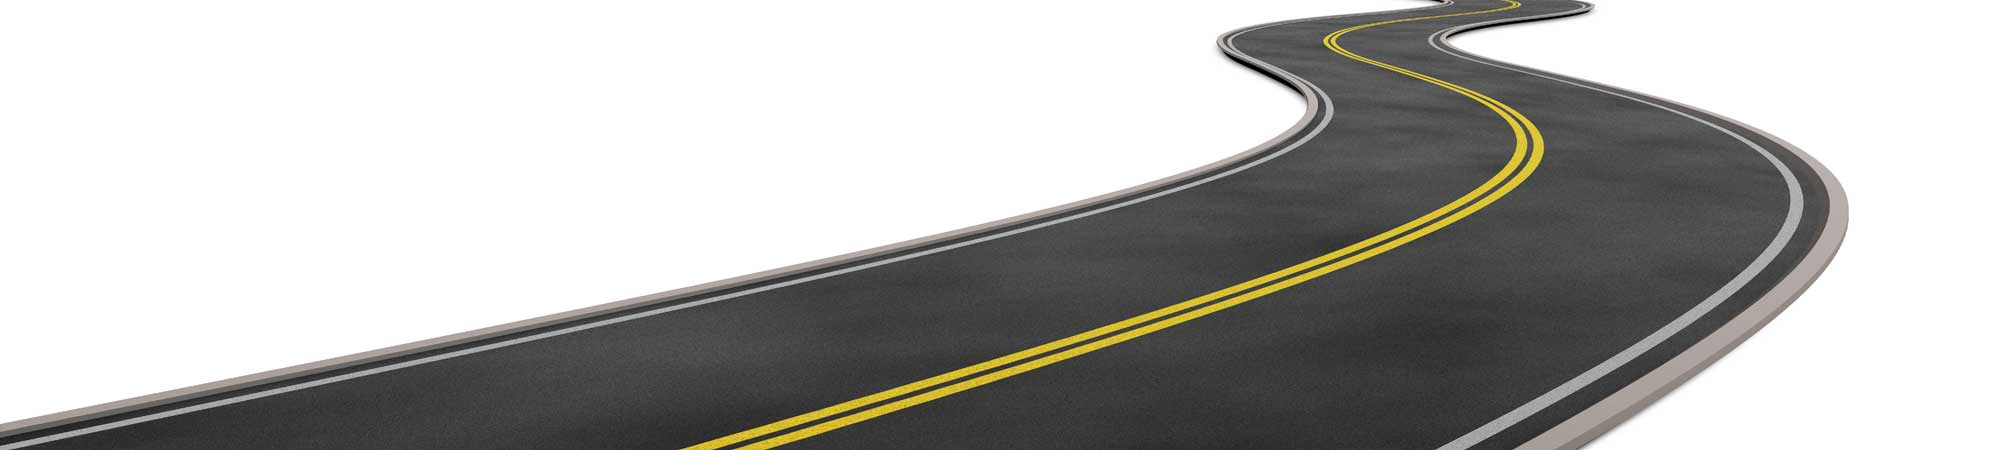 Clipart road curving. Free curved cliparts download